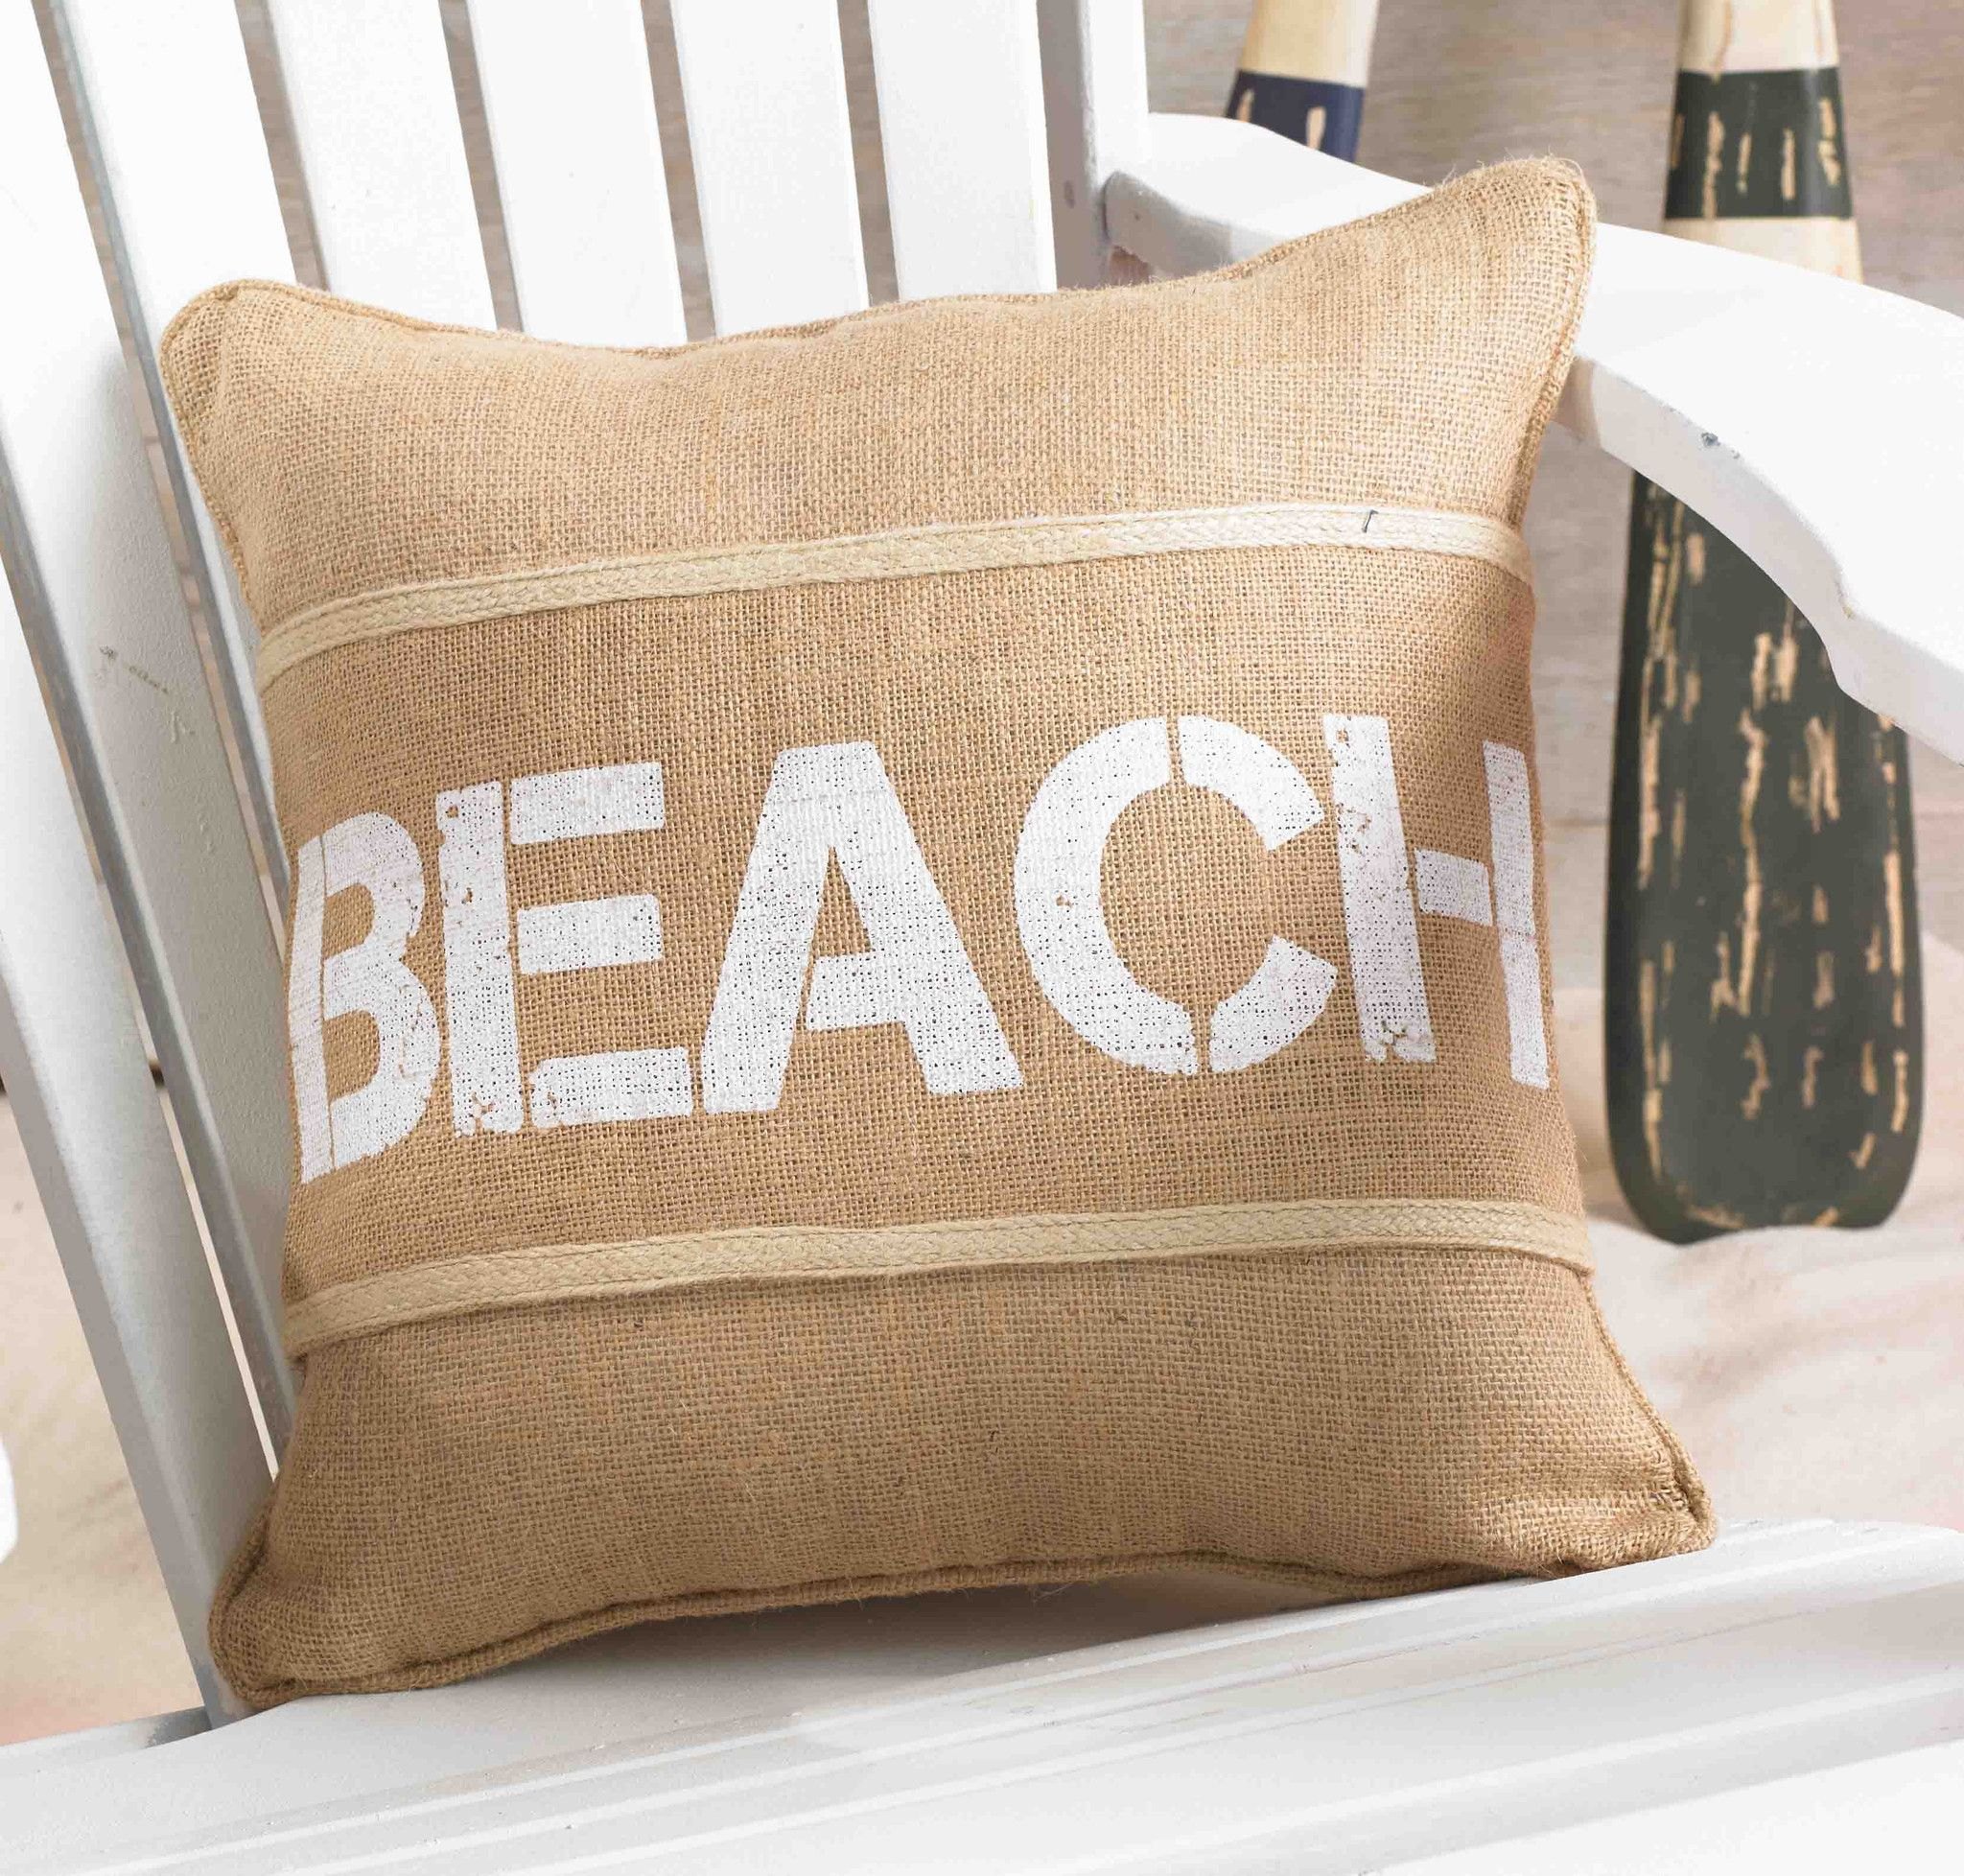 pinterest pillows pillow beach saying gallery bedroom word coastal theme pin